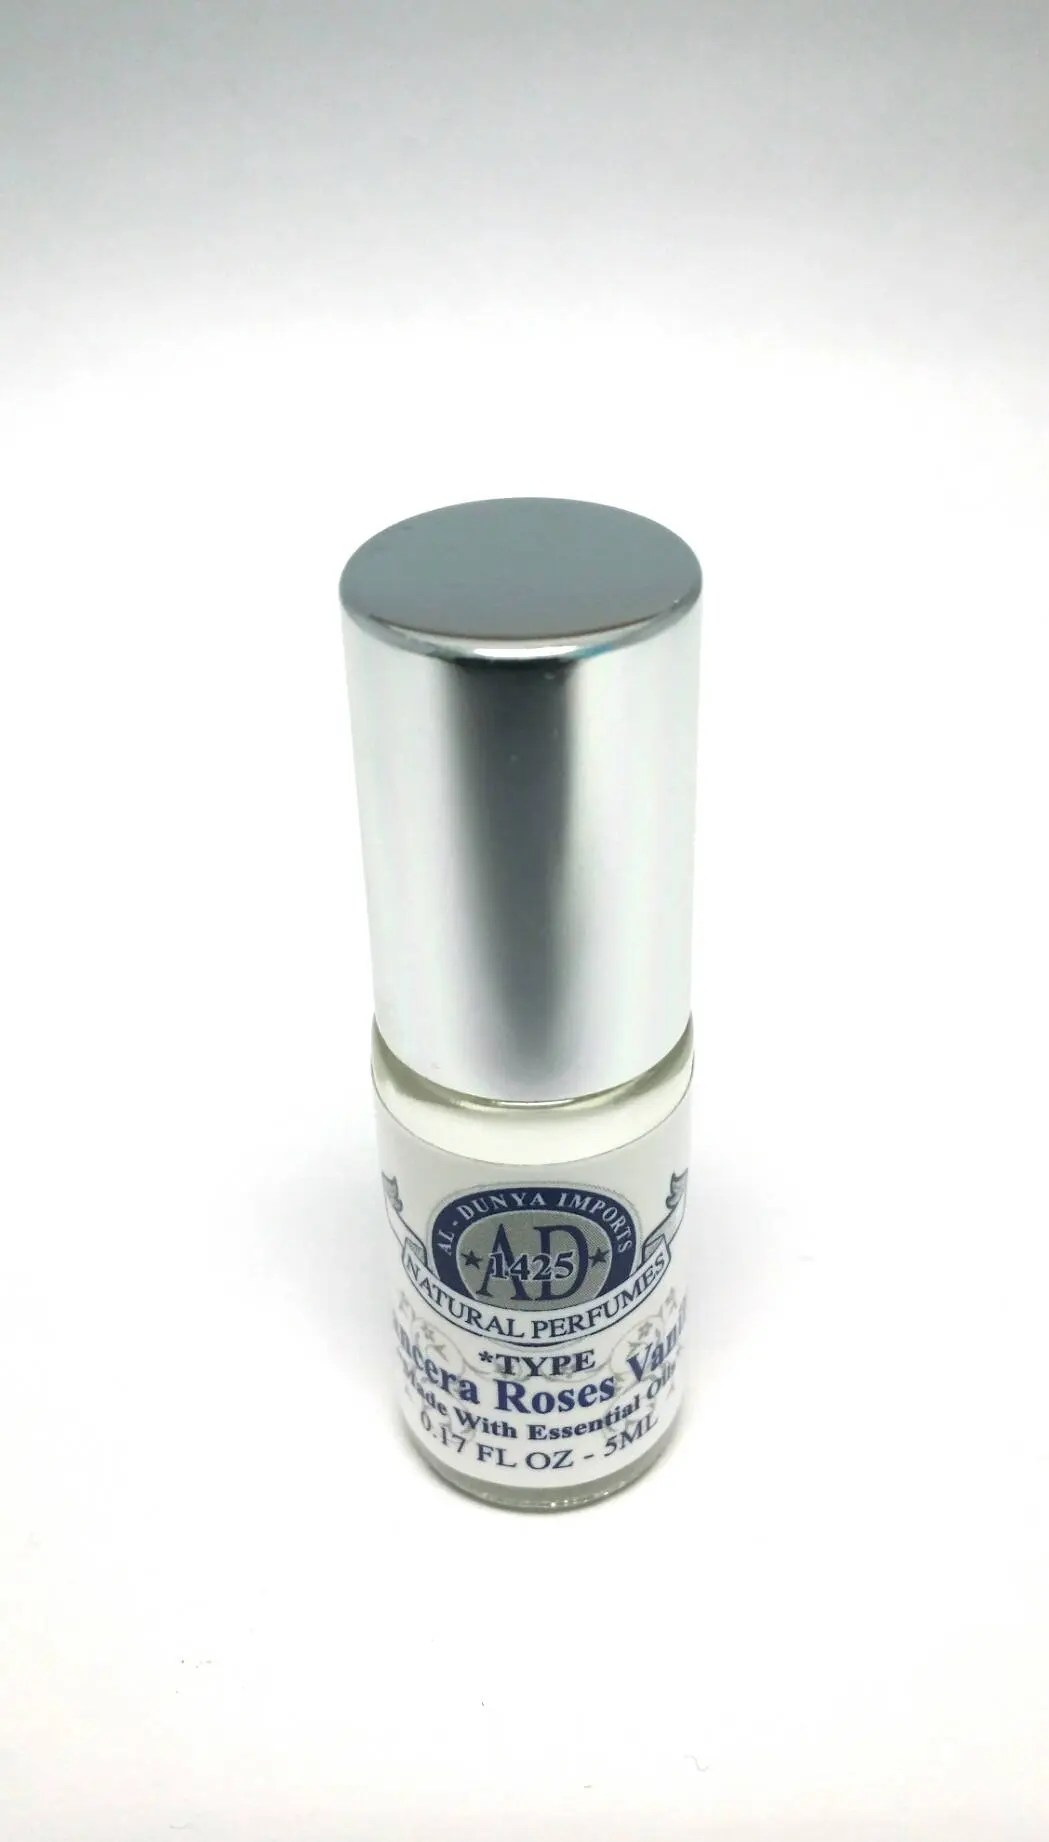 Parfum Diamantform 1 Niché Parfum Oil